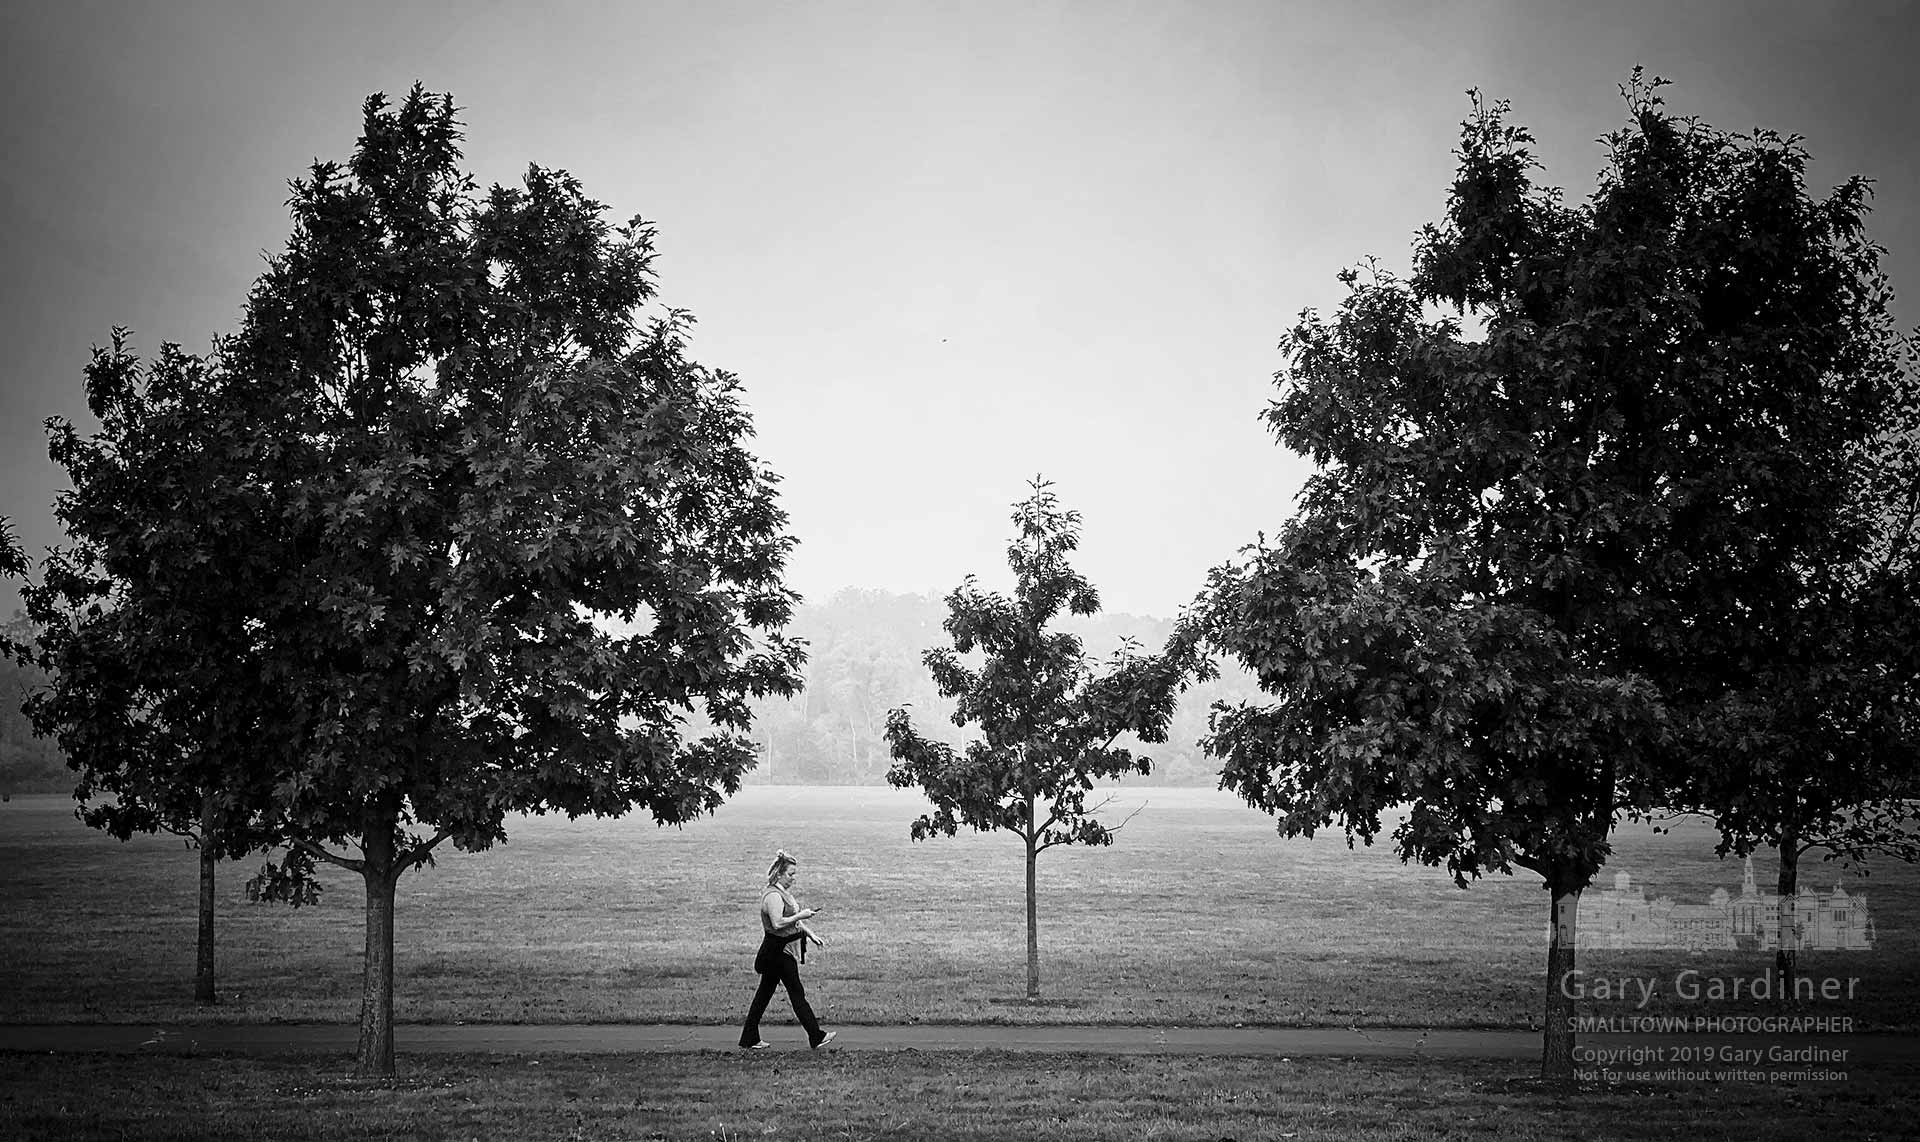 A woman checks her phone as she walks along the path at the sports fields on Cleveland Ave. on a foggy morning. My Final Photo for Oct. 3, 2019.